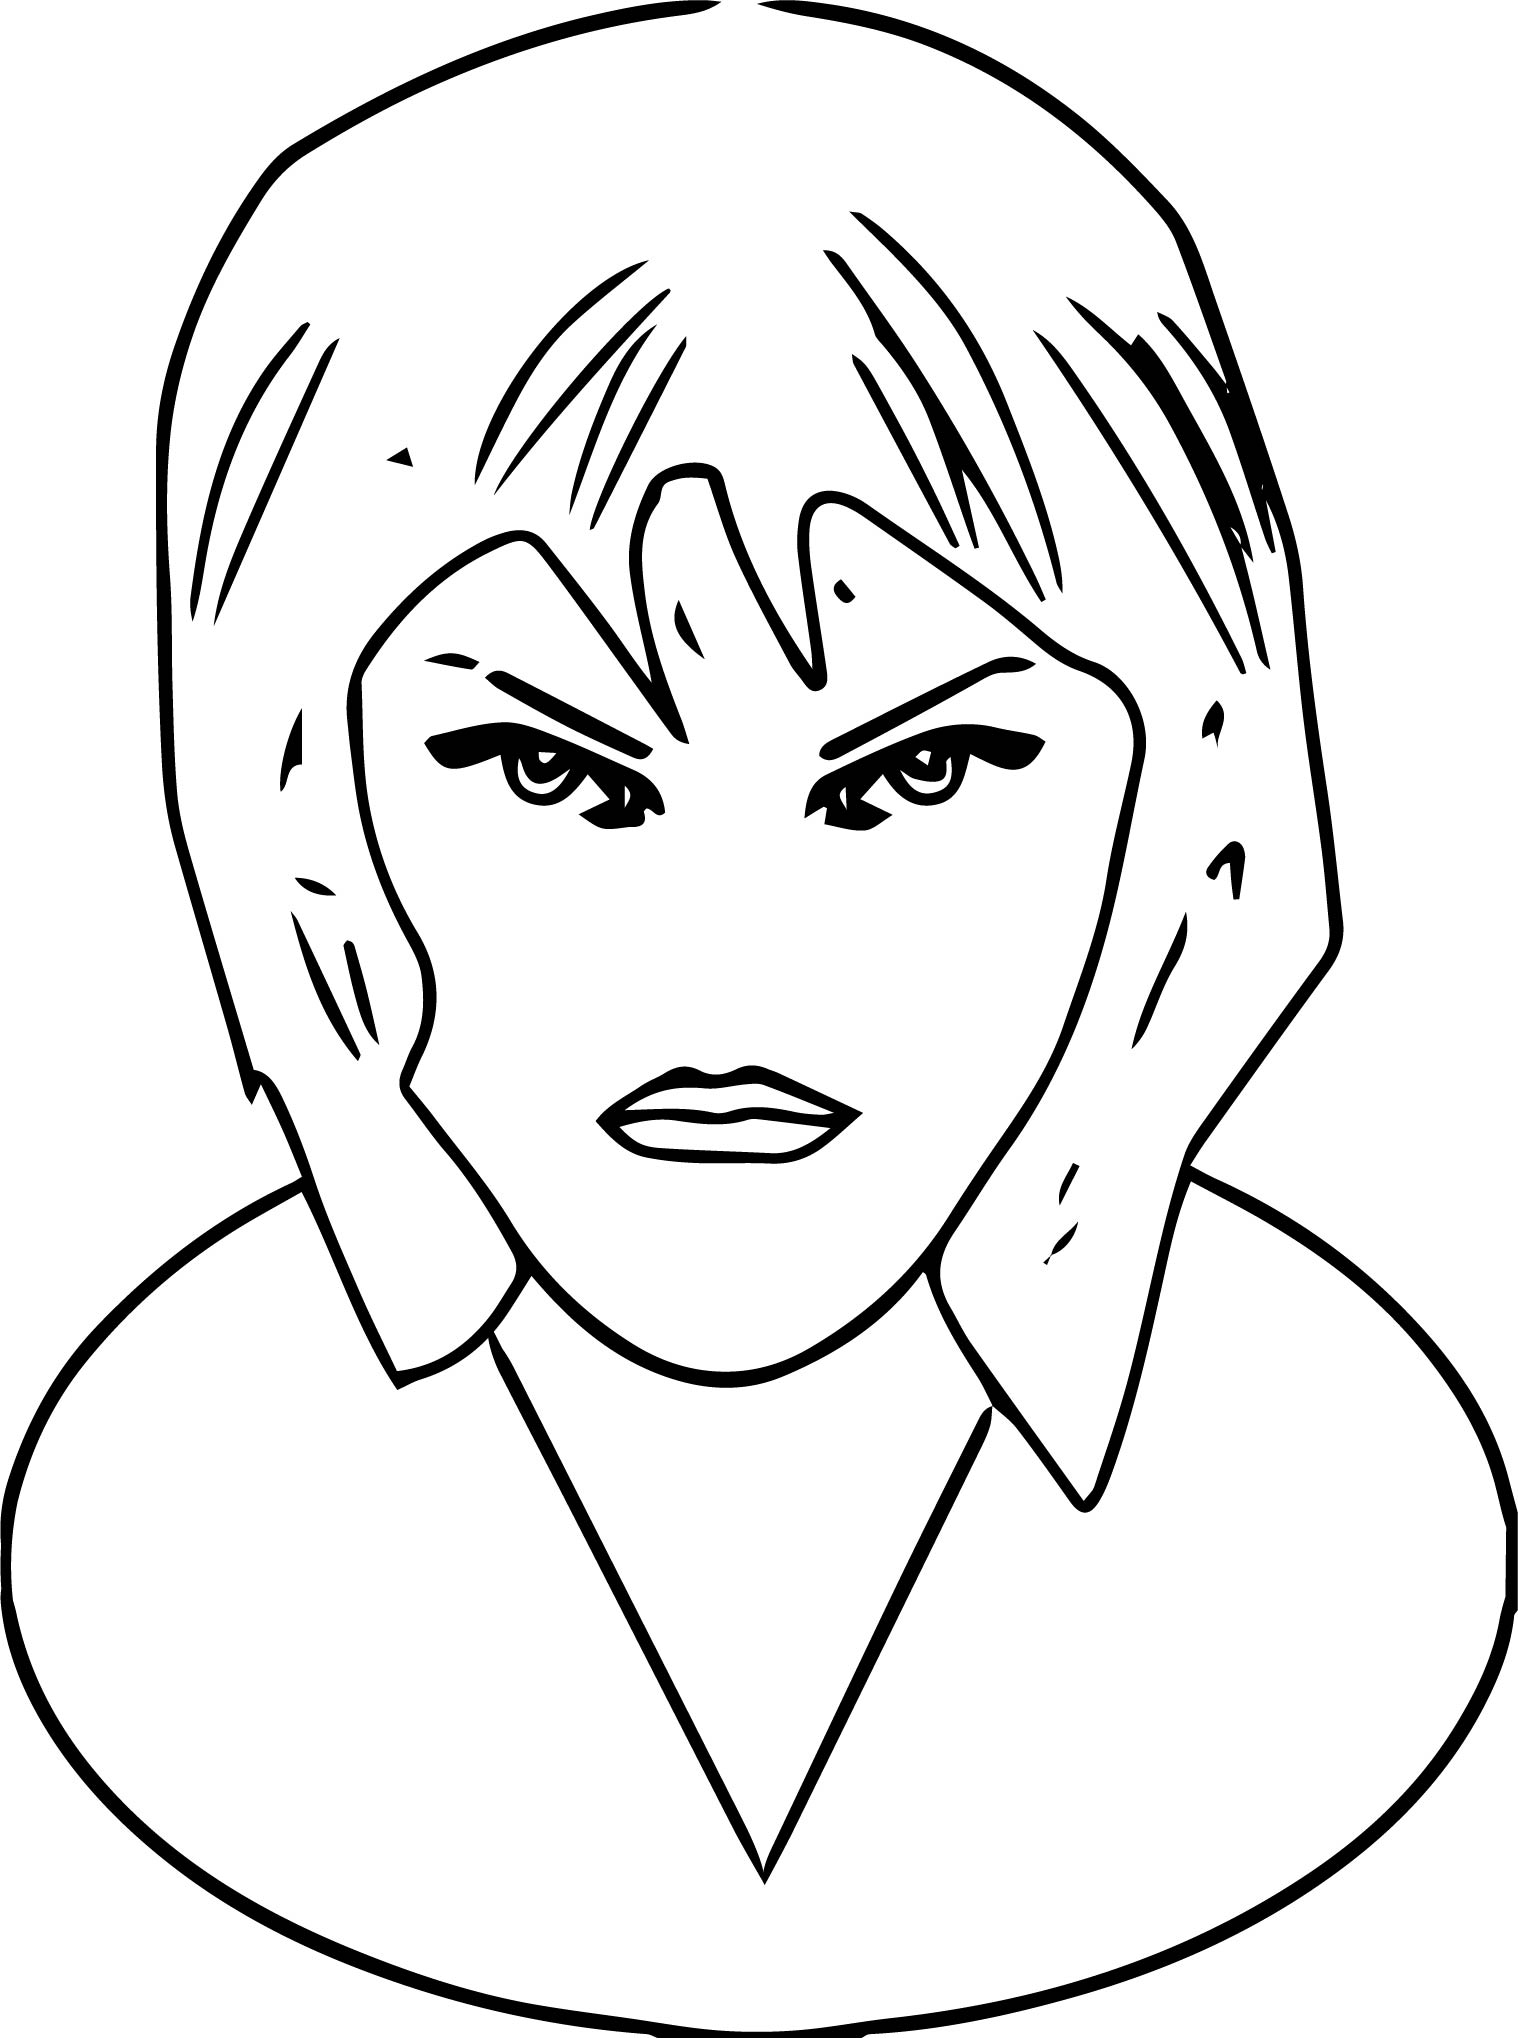 Face Woman Coloring Page